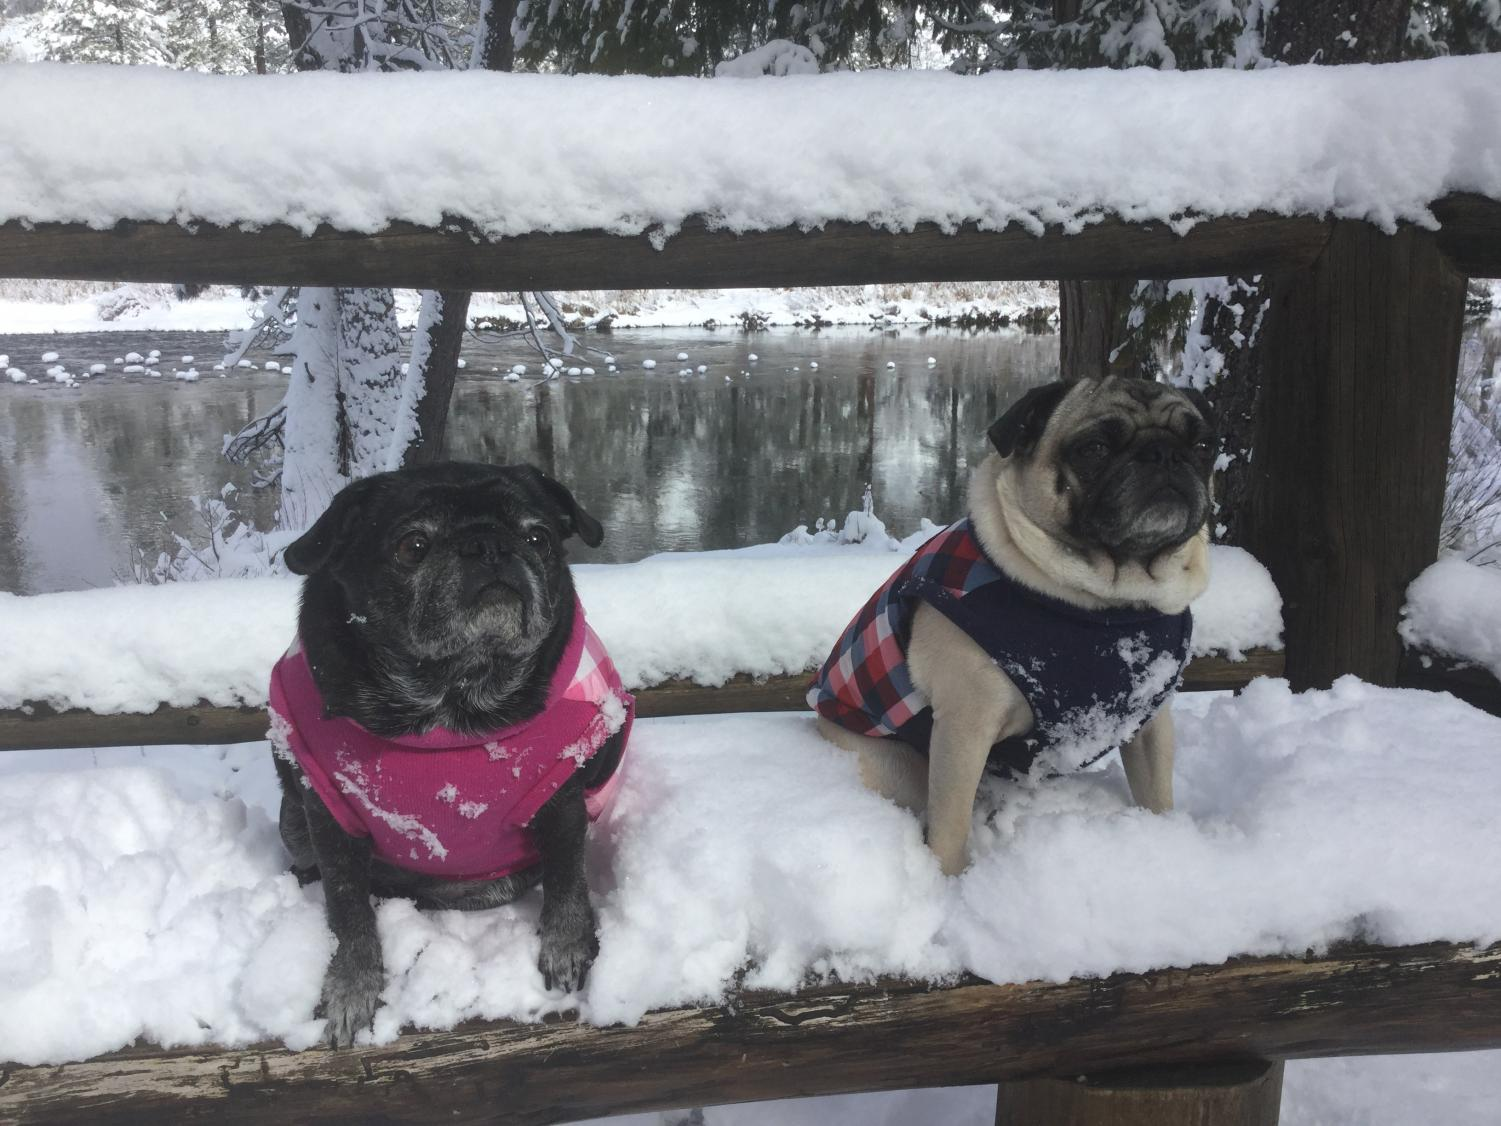 Mr. Heywood's Pugs, Olive and Woody, pictured on a snowy walk. (Photo courtesy of Mr. Heywood)